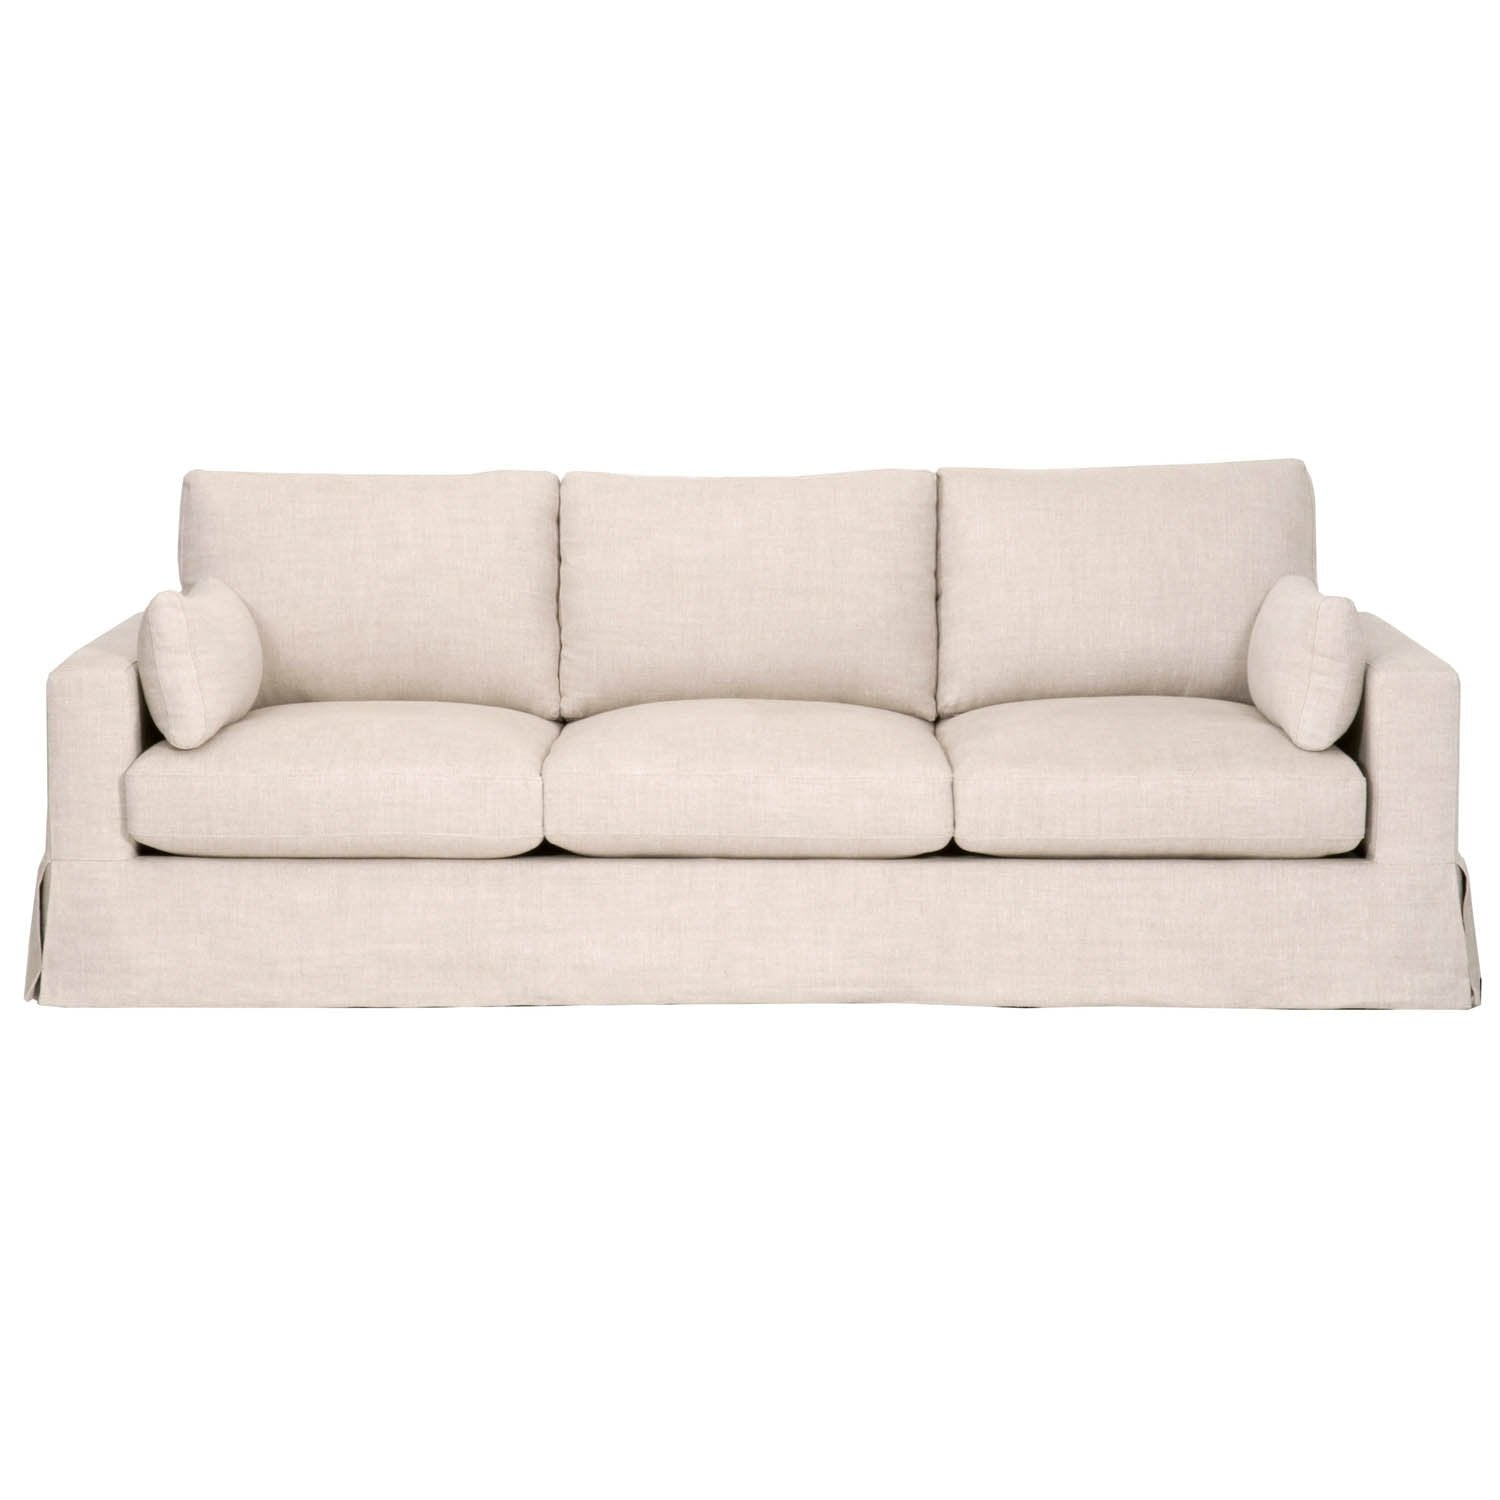 "Maxwell 99"" Sofa in Bisque French Linen"